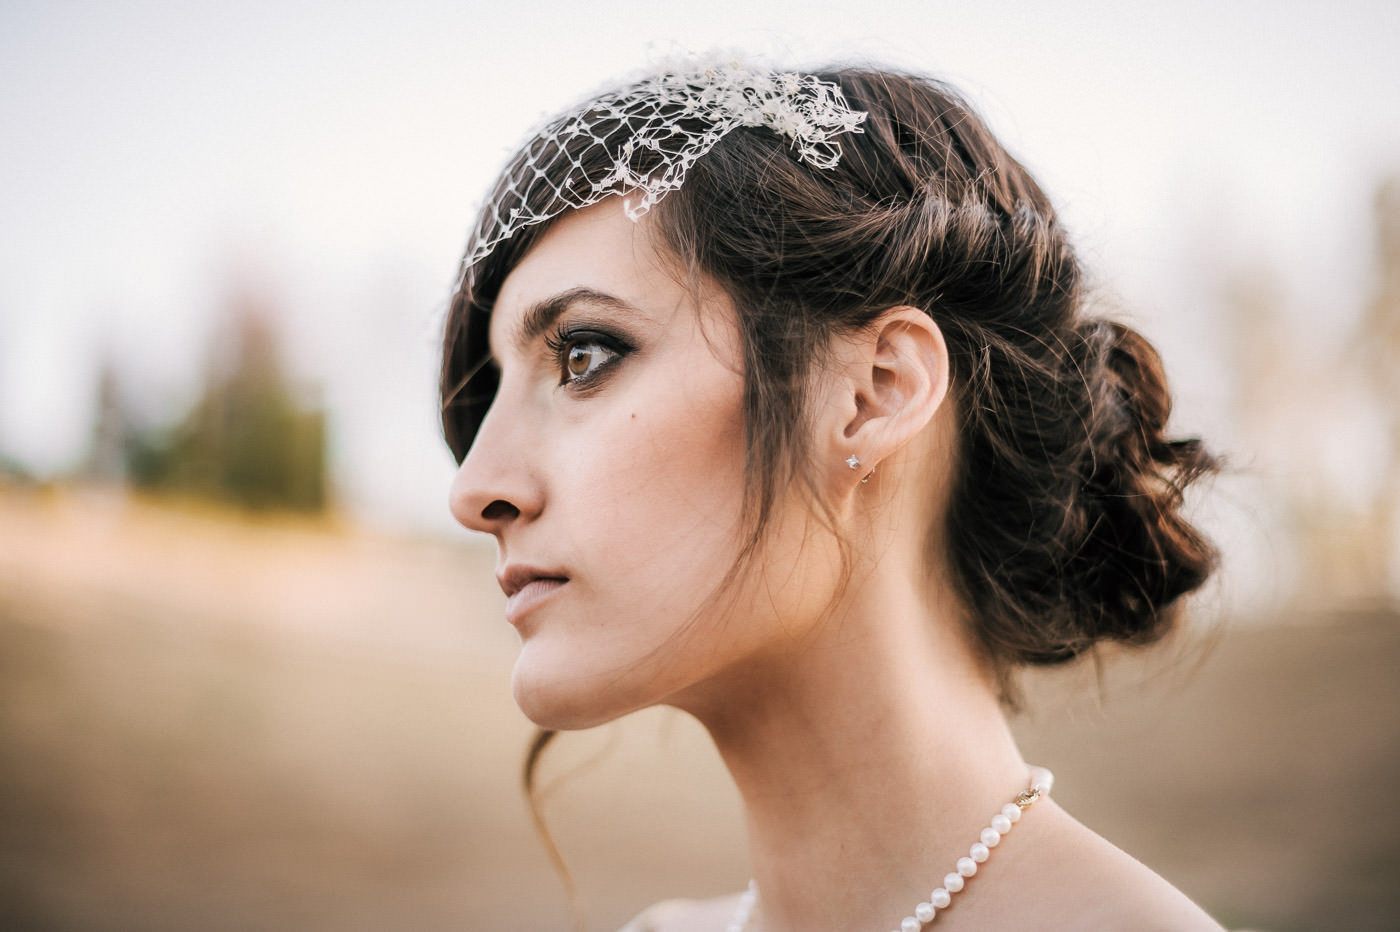 Stunning headshot of a vintage styled bride in temecula california